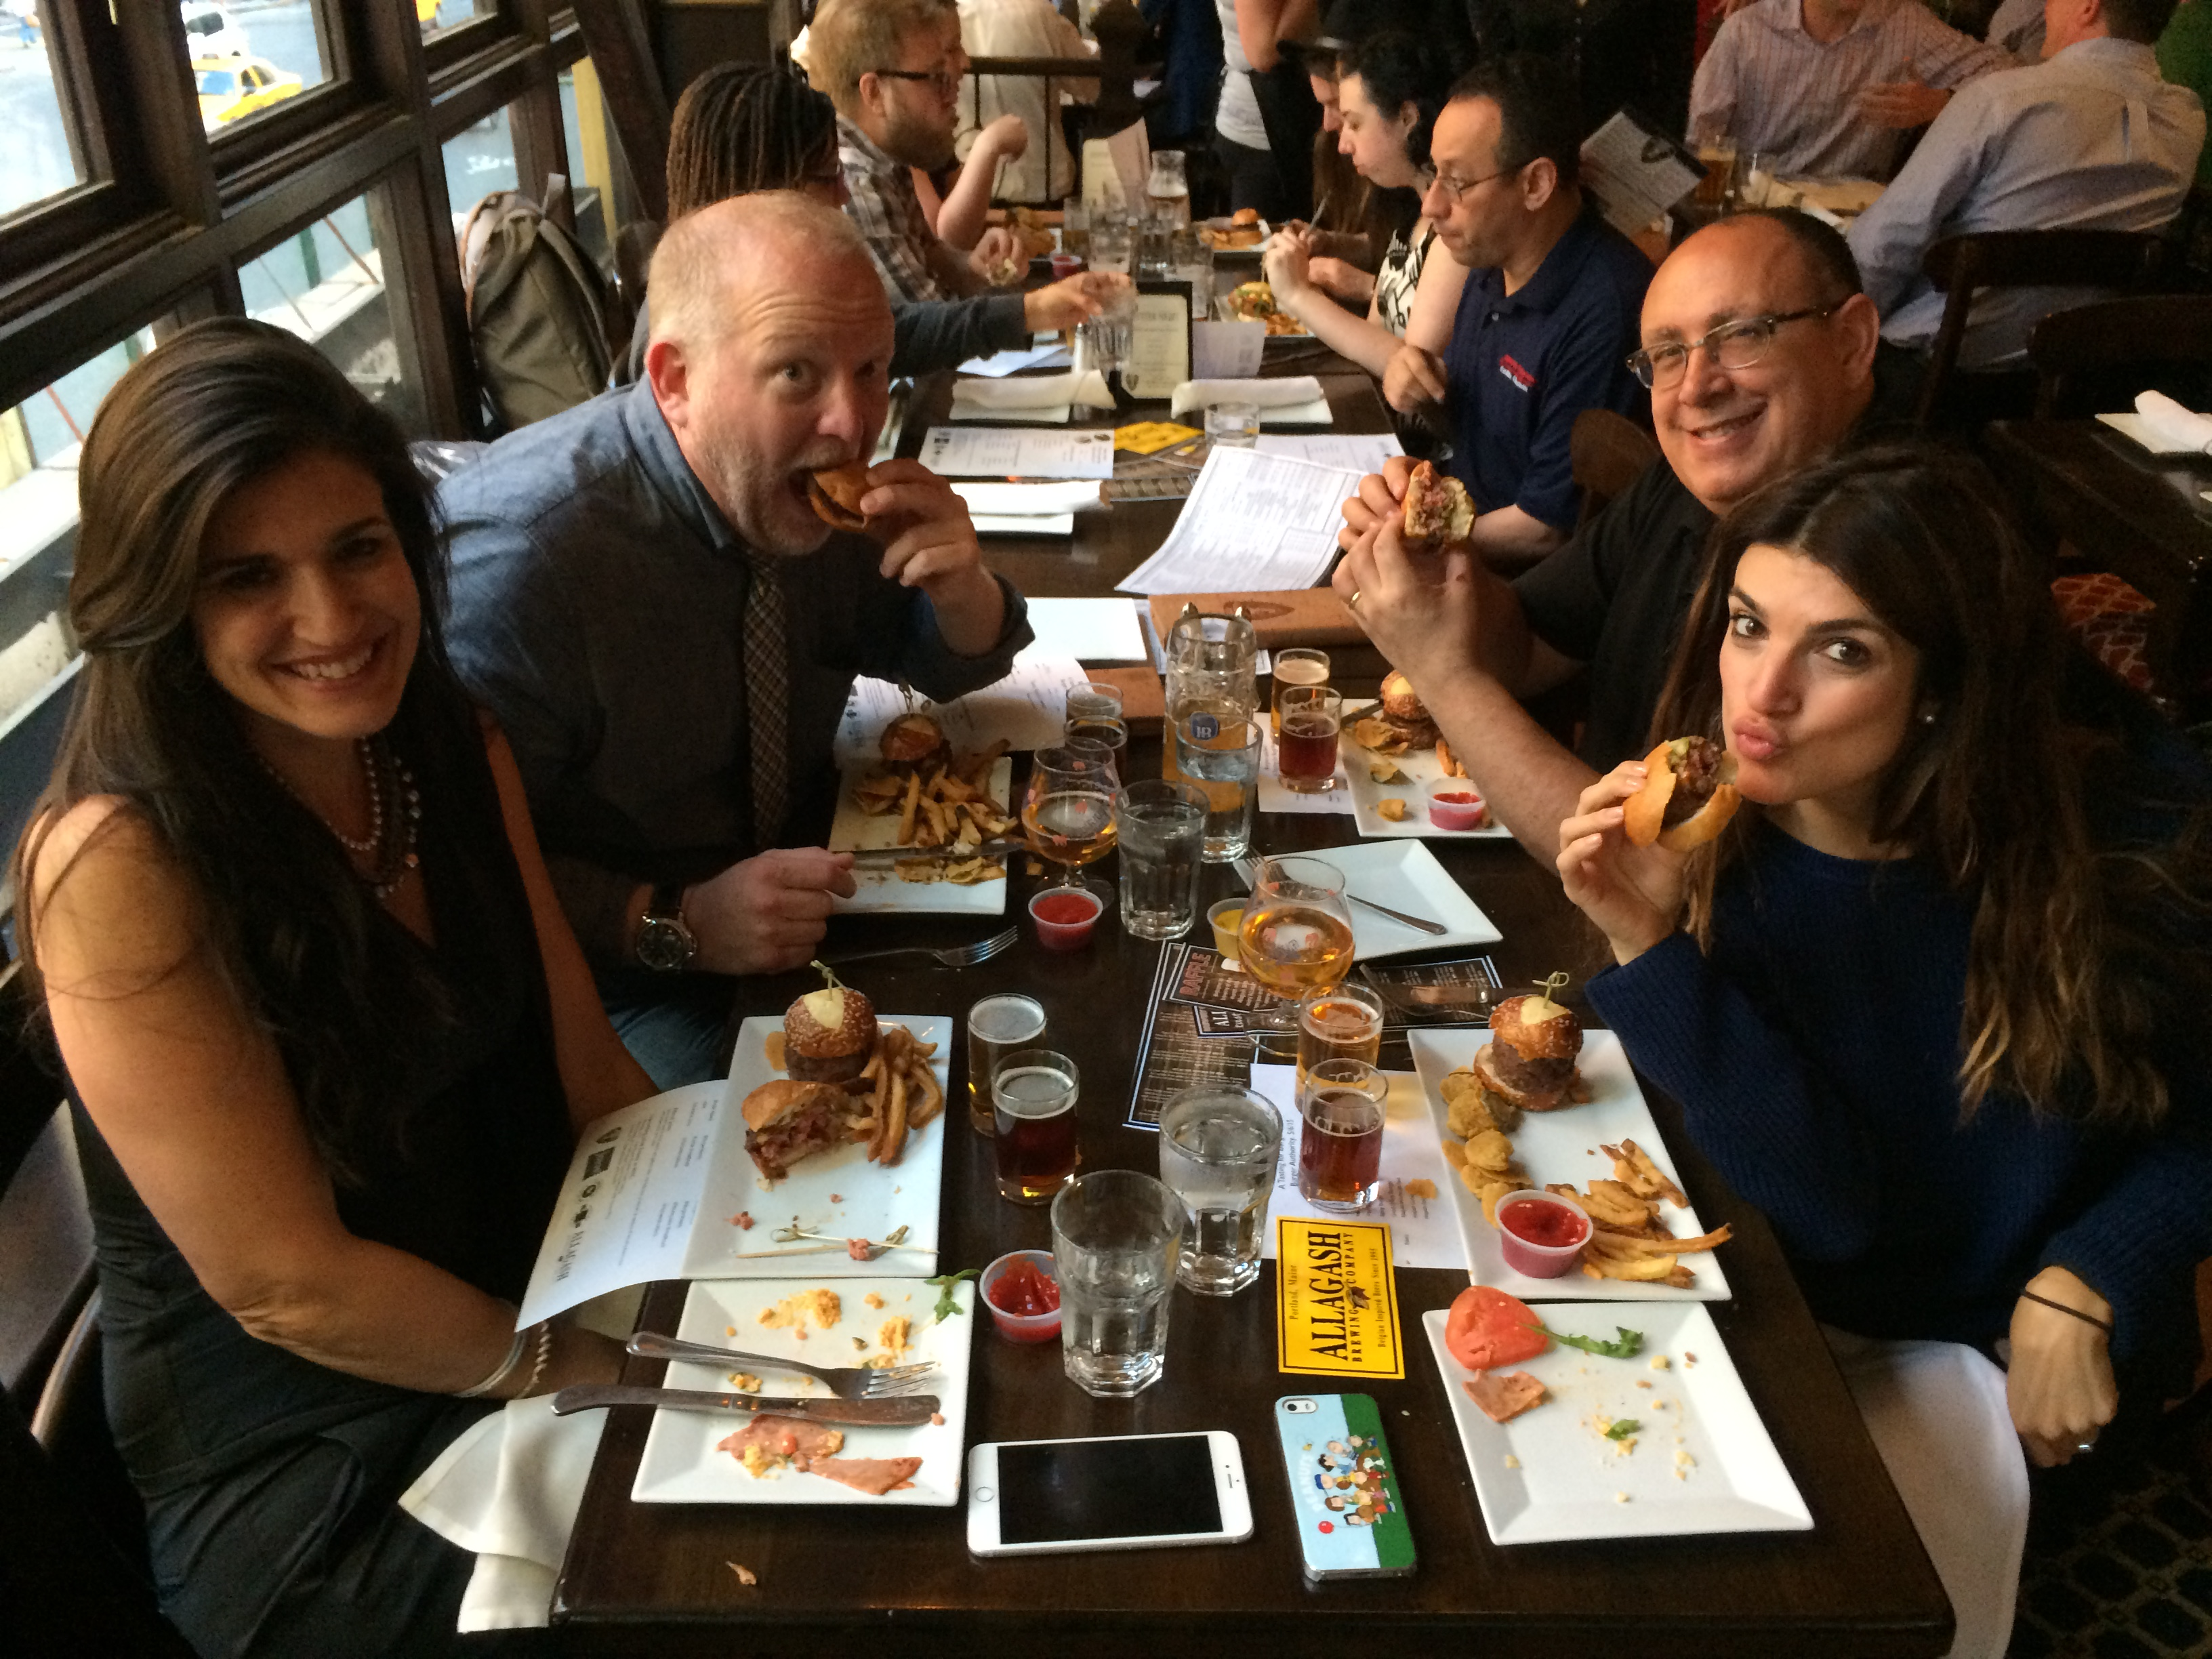 Schweid-and-Sons-Beer-Burger-Dinner-Beer-Authority-2015-NY-Burger-Week-2292